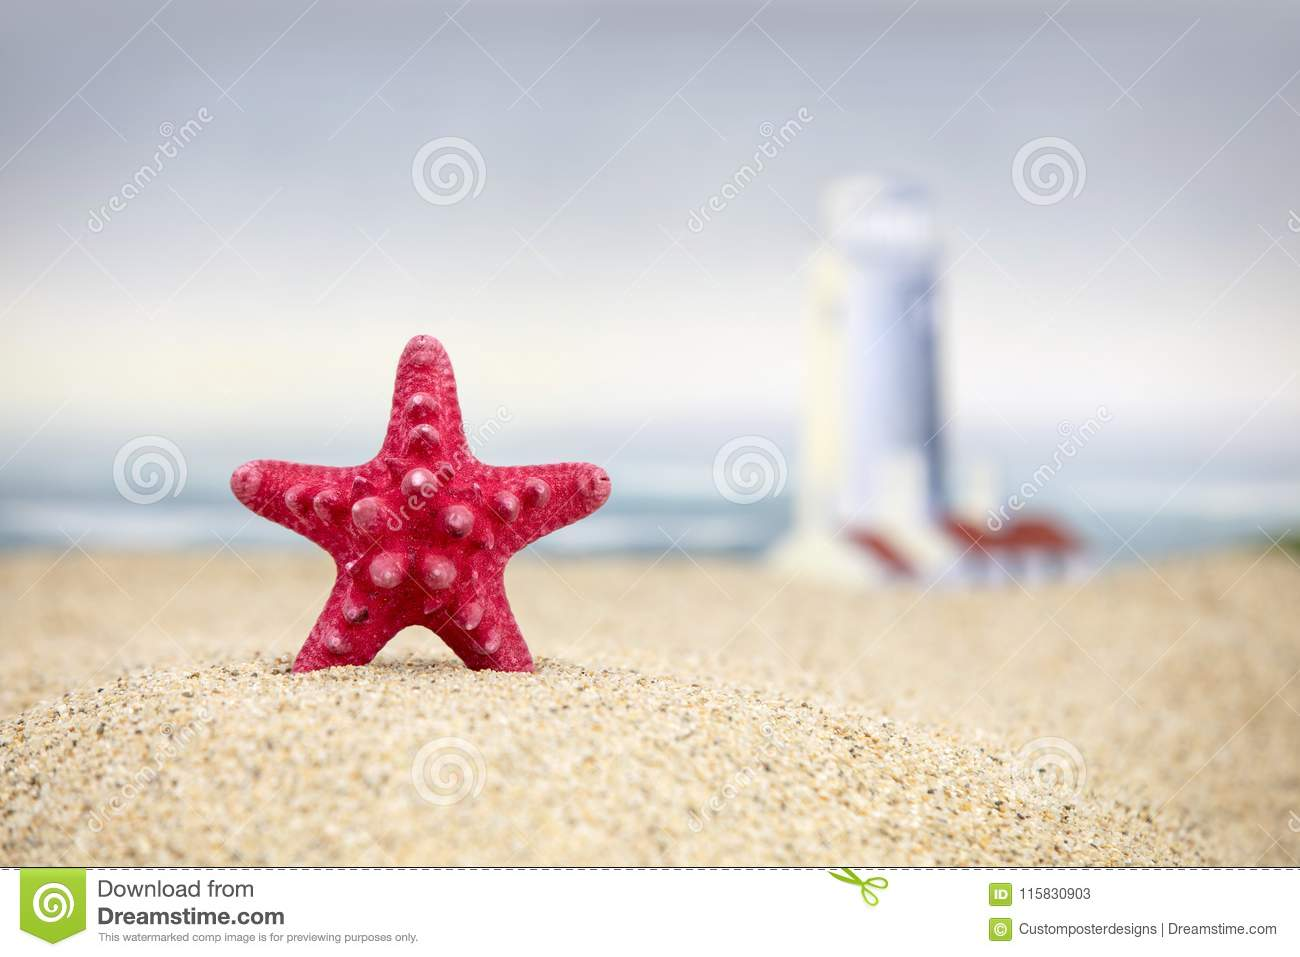 A red starfish and lighthouse at the beach.